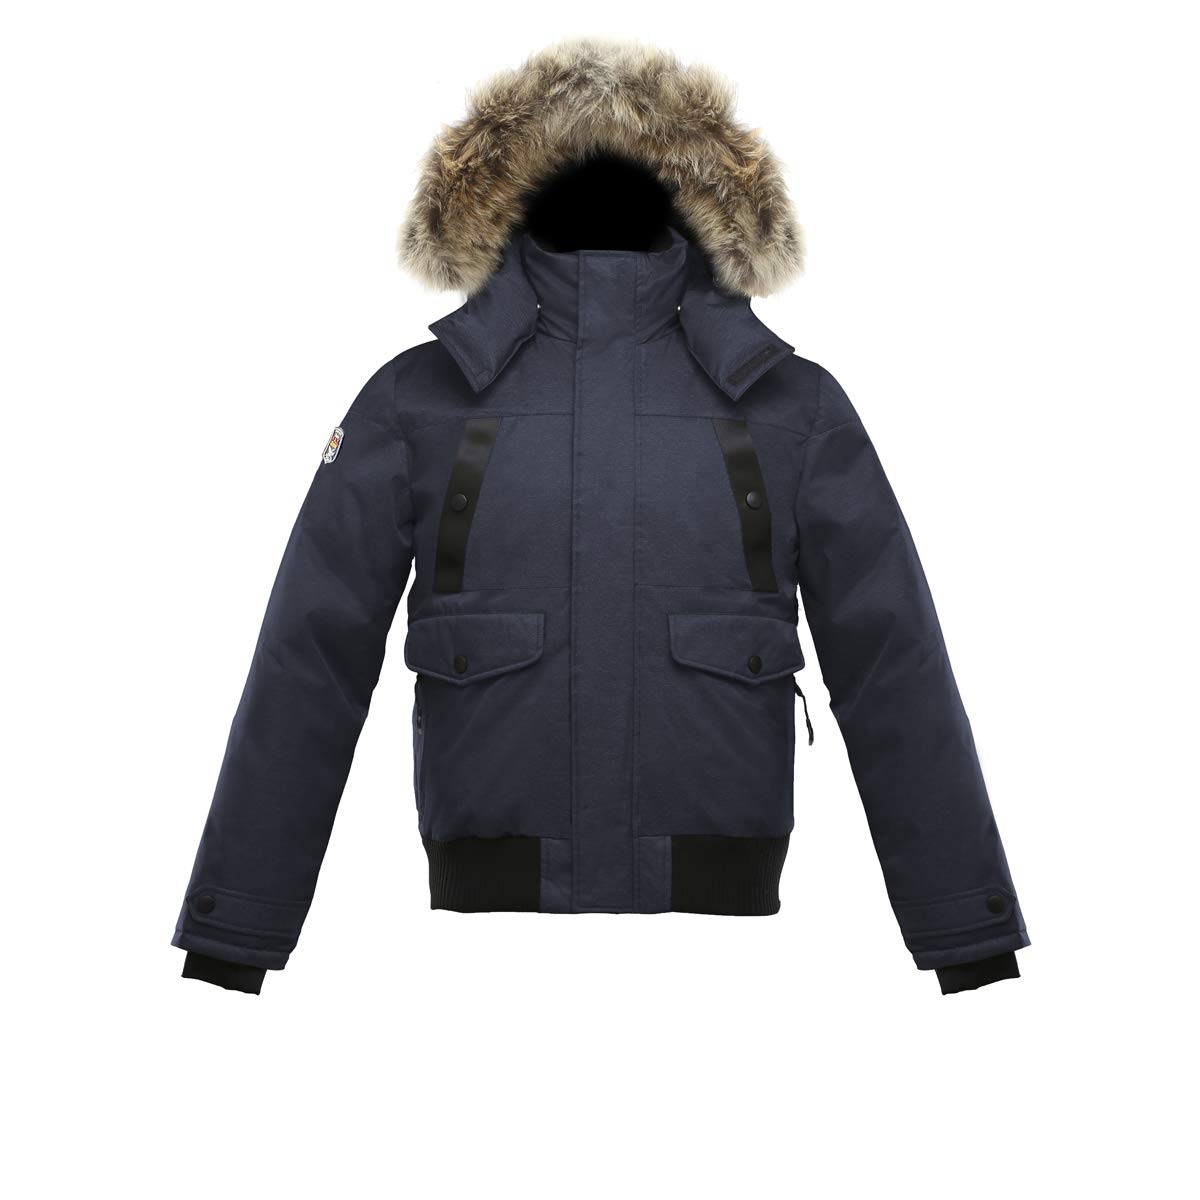 Triple F.A.T. Goose SAGA Collection   Norden Mens Hooded Goose Down Jacket Parka with Real Coyote Fur